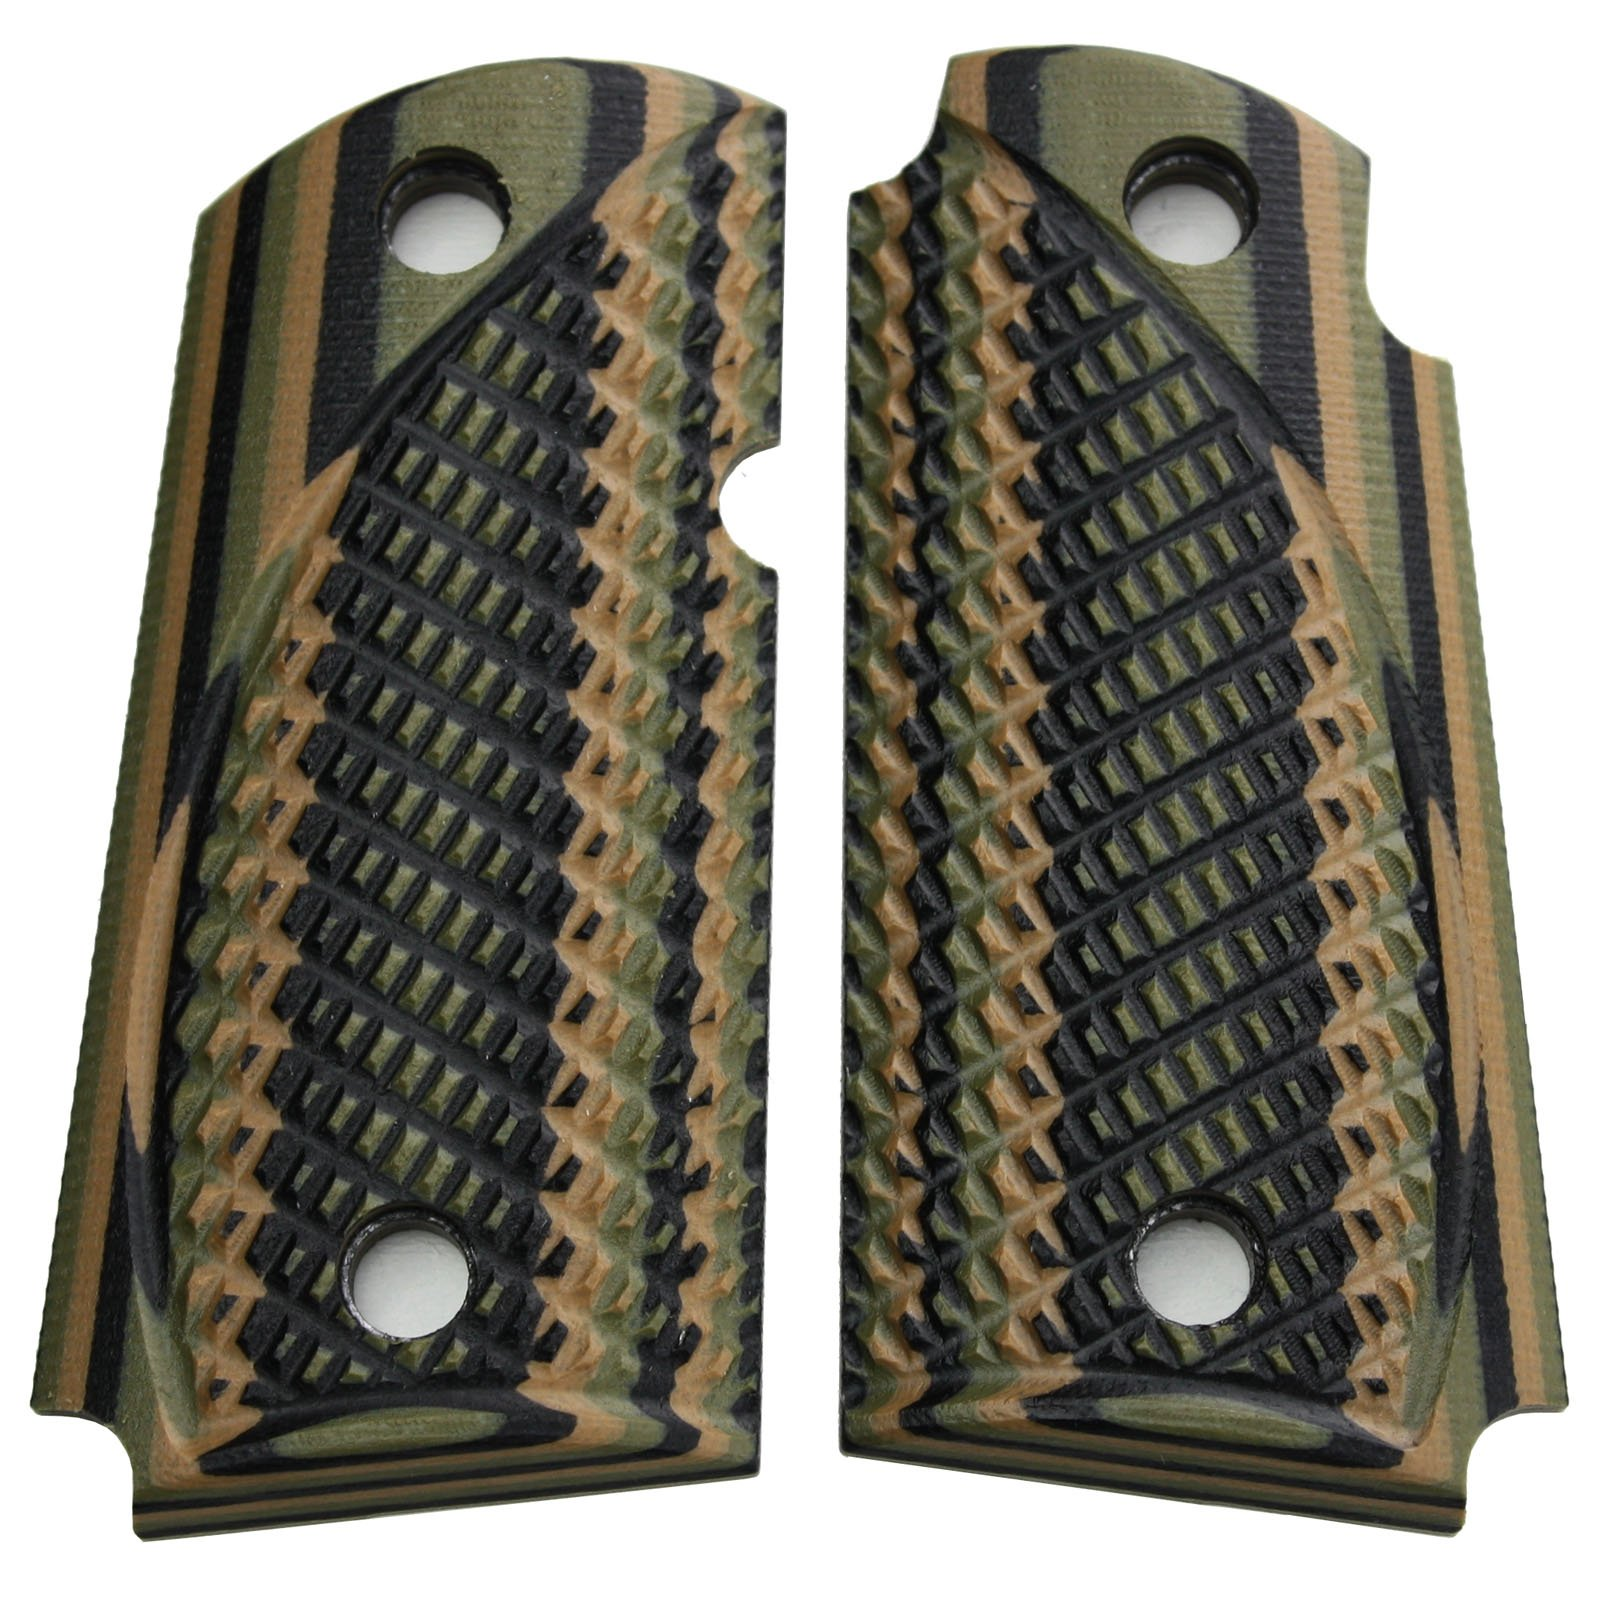 StonerCNC Kimber Micro Carry 9 9mm Spartan G10 Grips with or Without Ambi (Mil Spec Camo, Non Ambi) by StonerCNC